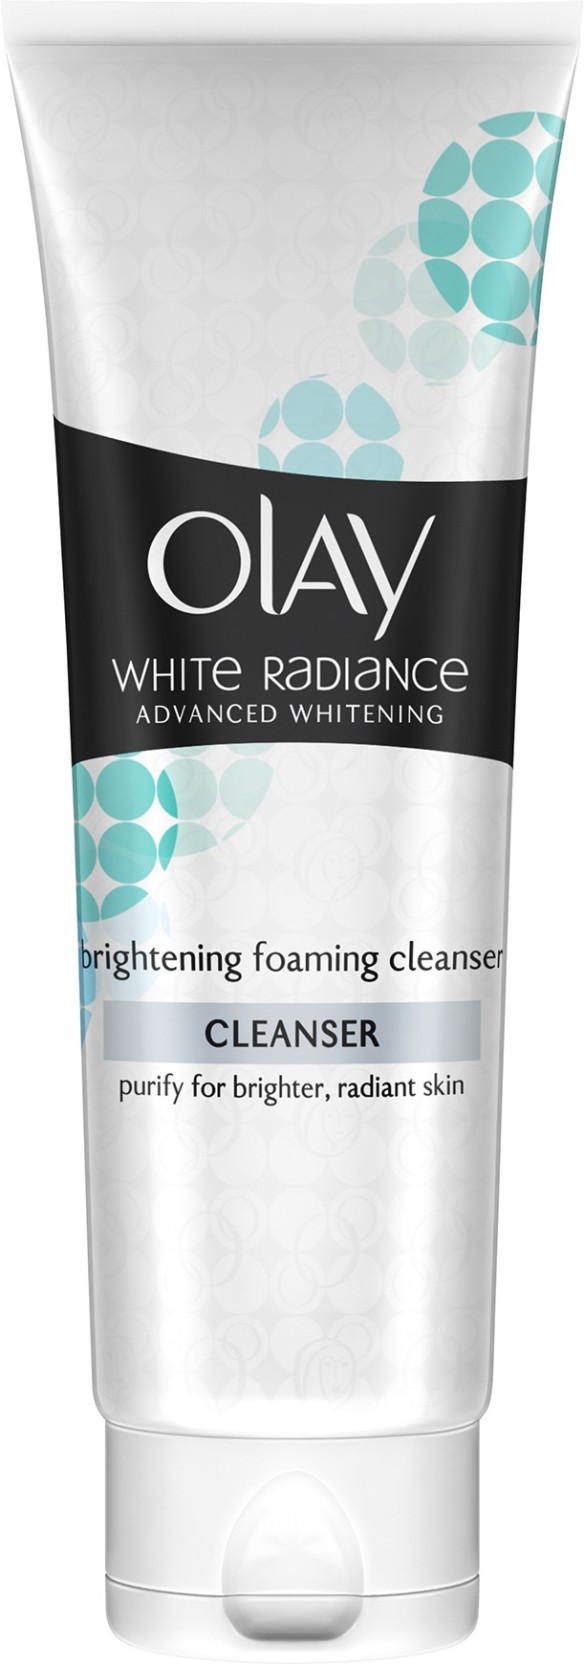 Olay White Radiance Advanced Whitening Brightening Foaming Cleanser. Home